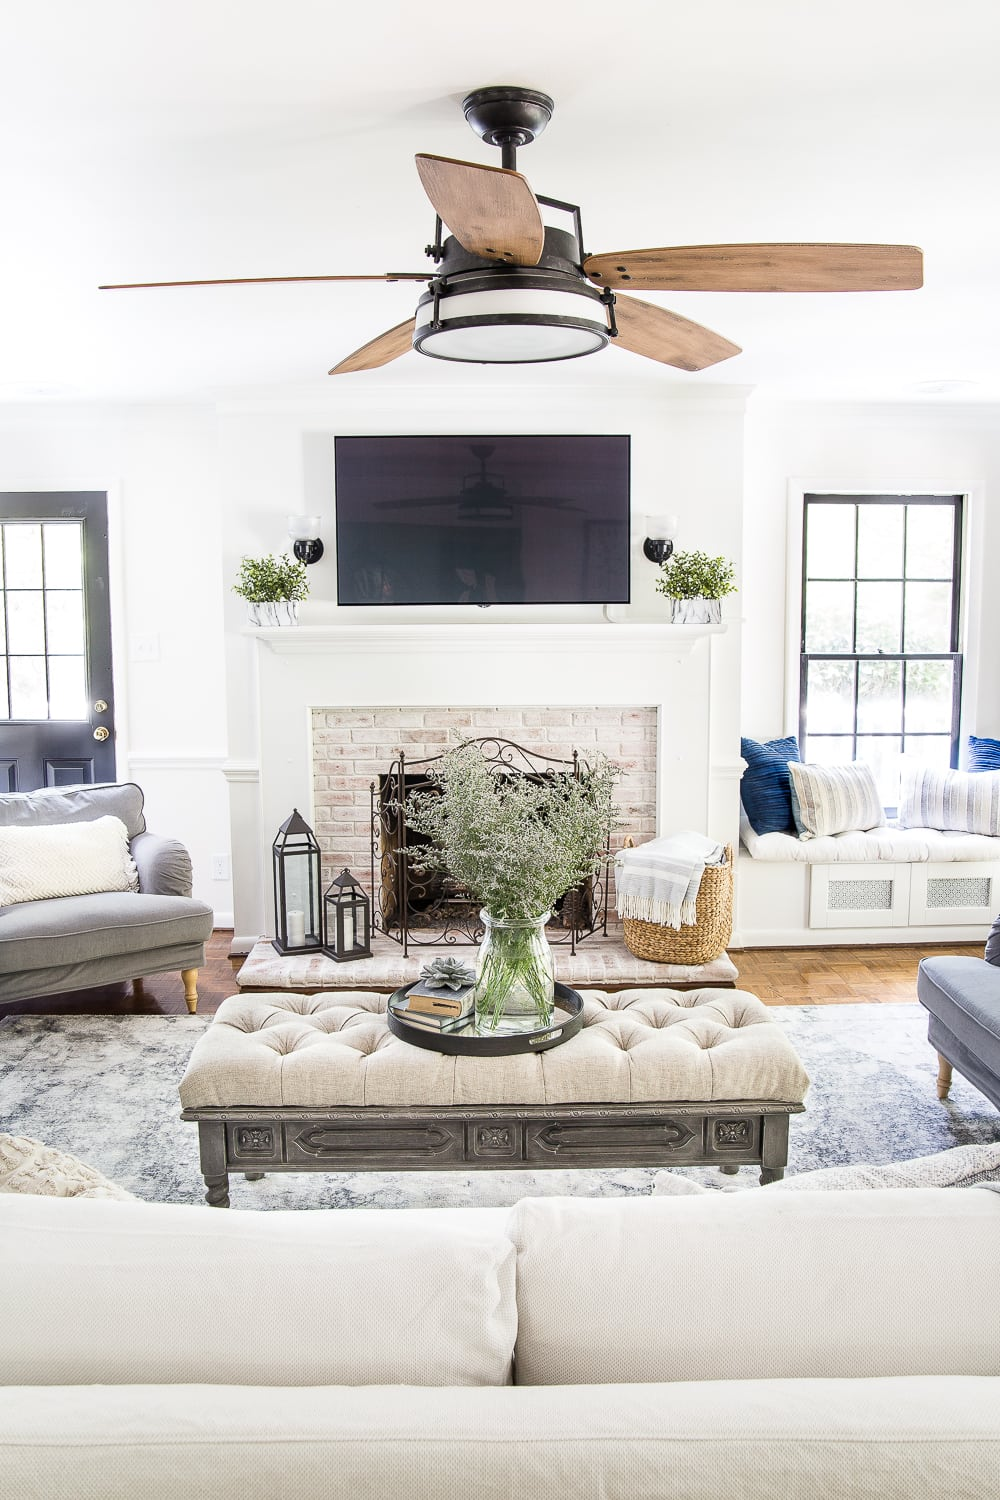 Light and airy summer living room with modern farmhouse style